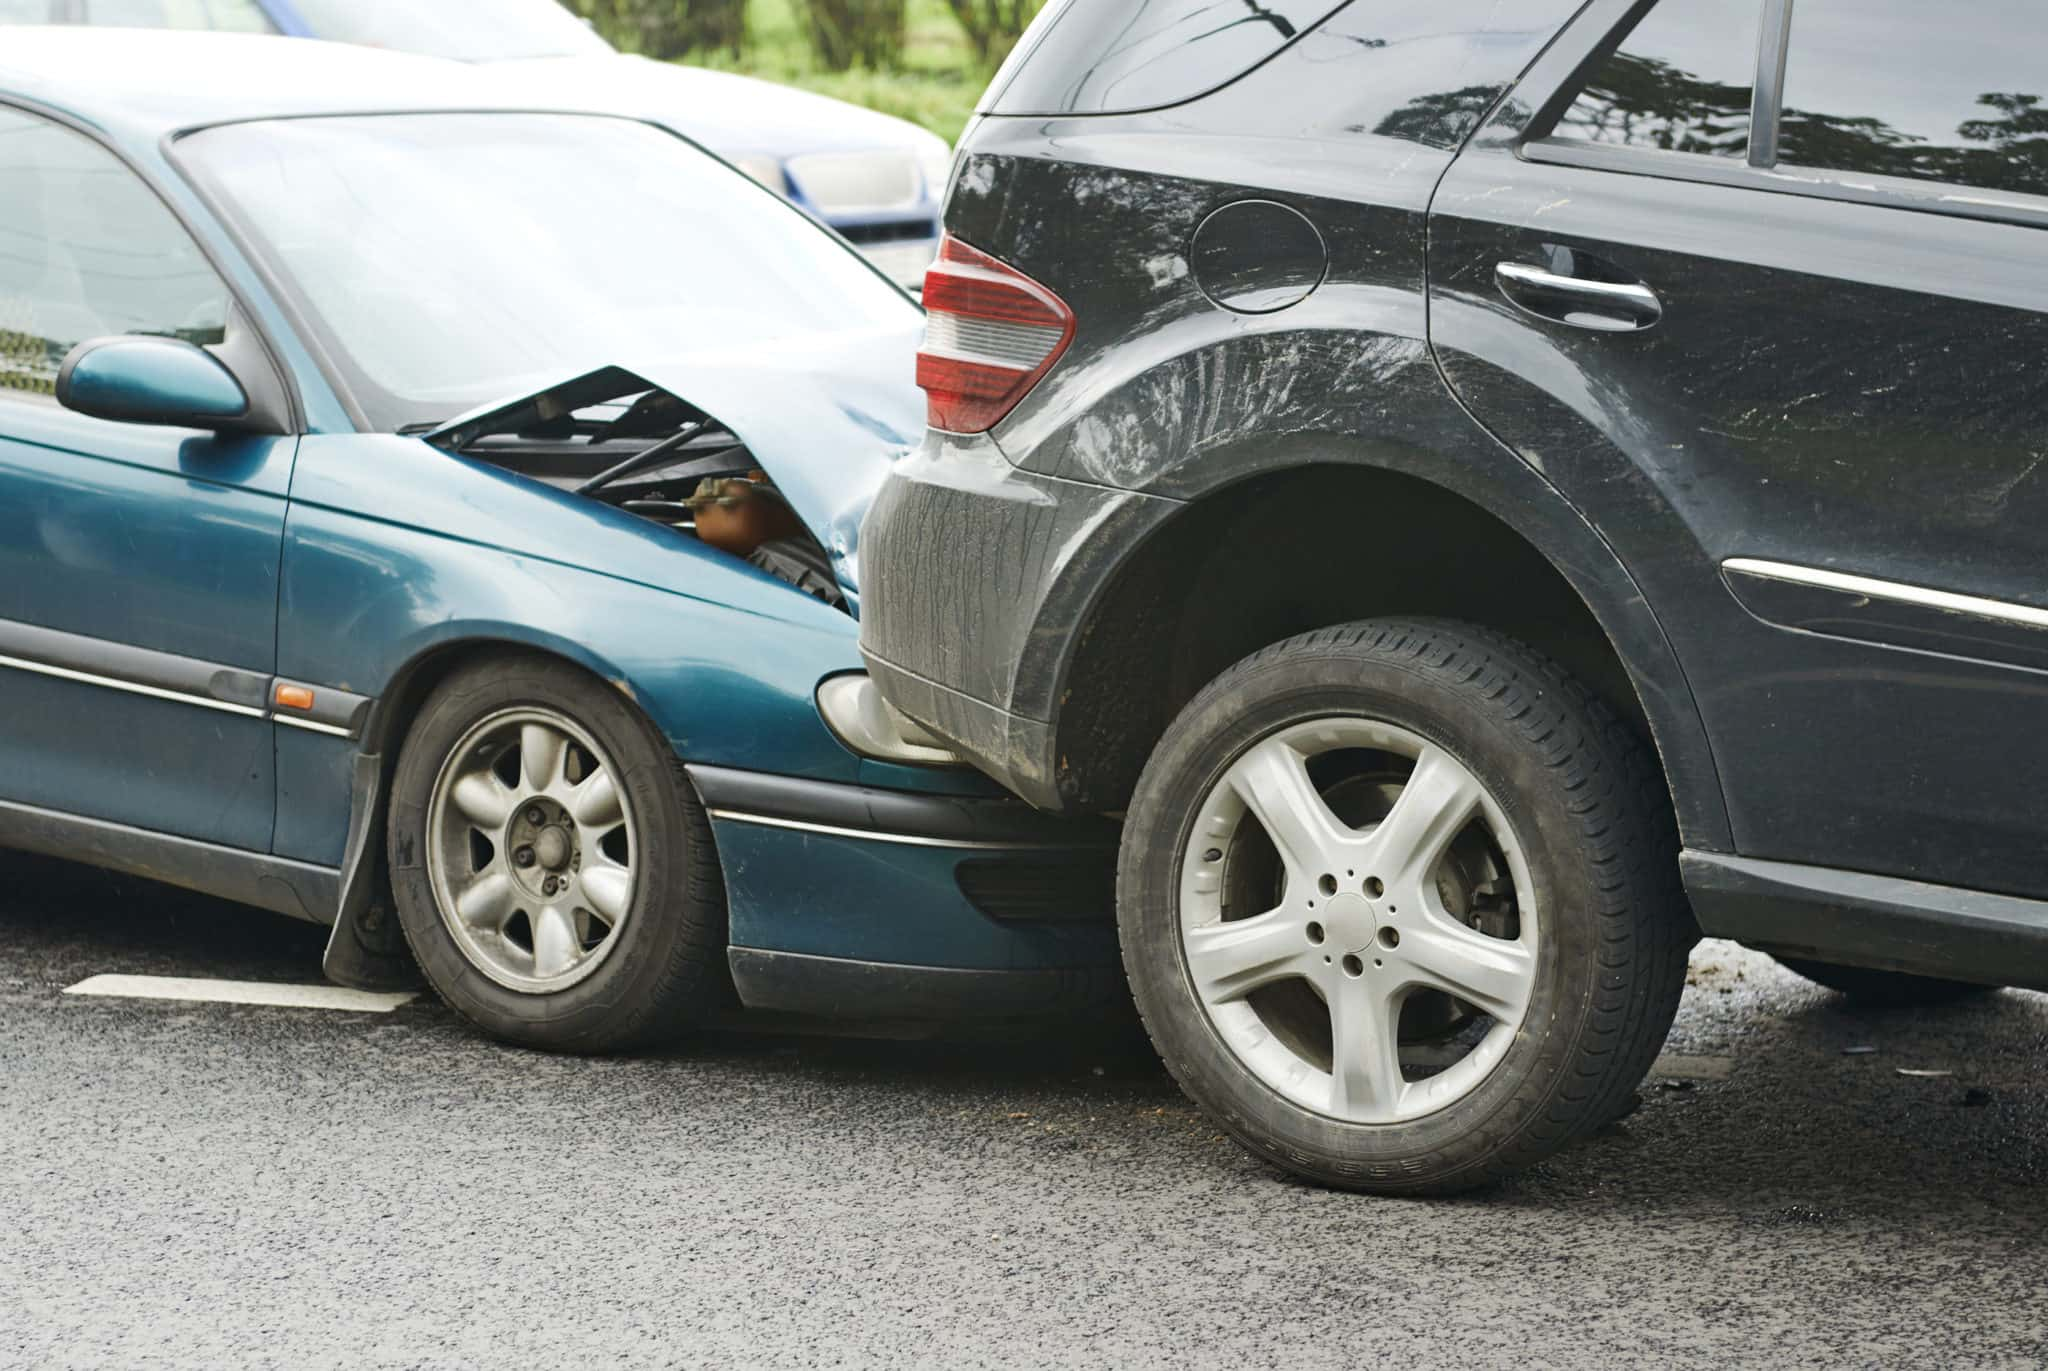 What City in Texas Has the Most Car Accidents?